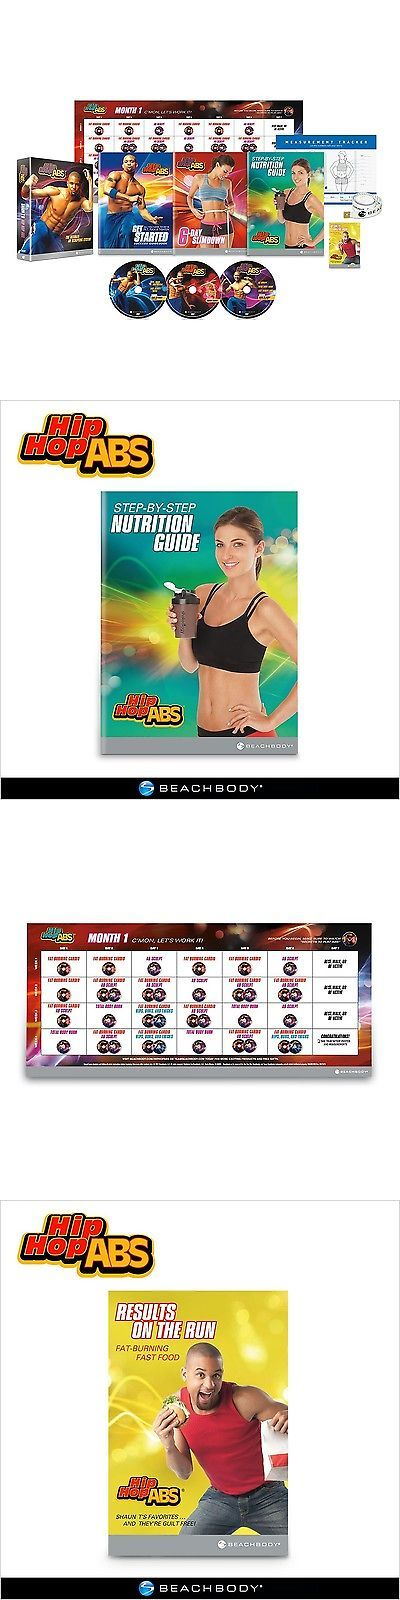 Fitness DVDs 109130: Hip Hop Abs Dvd Workout - New -> BUY IT NOW ONLY: $39.21 on eBay!